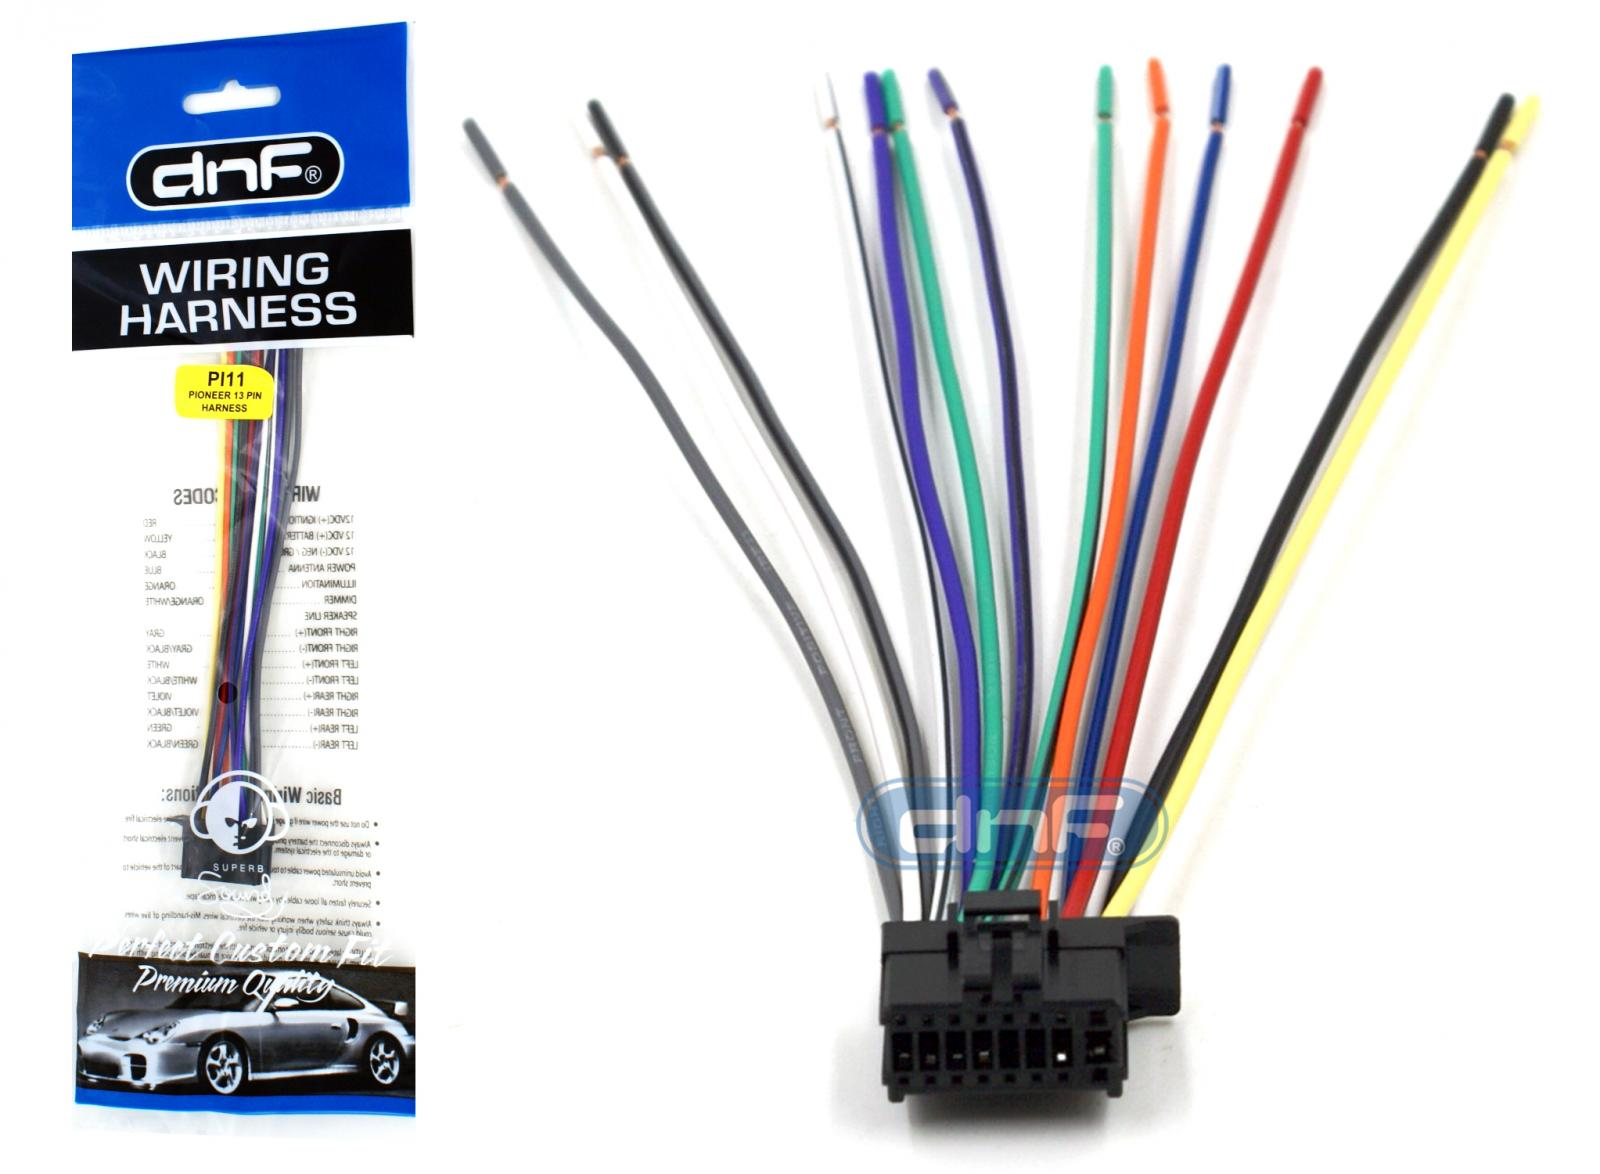 Pioneer Deh 2200ub Wiring Harness | Wiring Diagram on series and parallel circuits diagrams, snatch block diagrams, battery diagrams, smart car diagrams, friendship bracelet diagrams, switch diagrams, electrical diagrams, gmc fuse box diagrams, troubleshooting diagrams, electronic circuit diagrams, engine diagrams, motor diagrams, hvac diagrams, transformer diagrams, pinout diagrams, internet of things diagrams, sincgars radio configurations diagrams, honda motorcycle repair diagrams, lighting diagrams, led circuit diagrams,